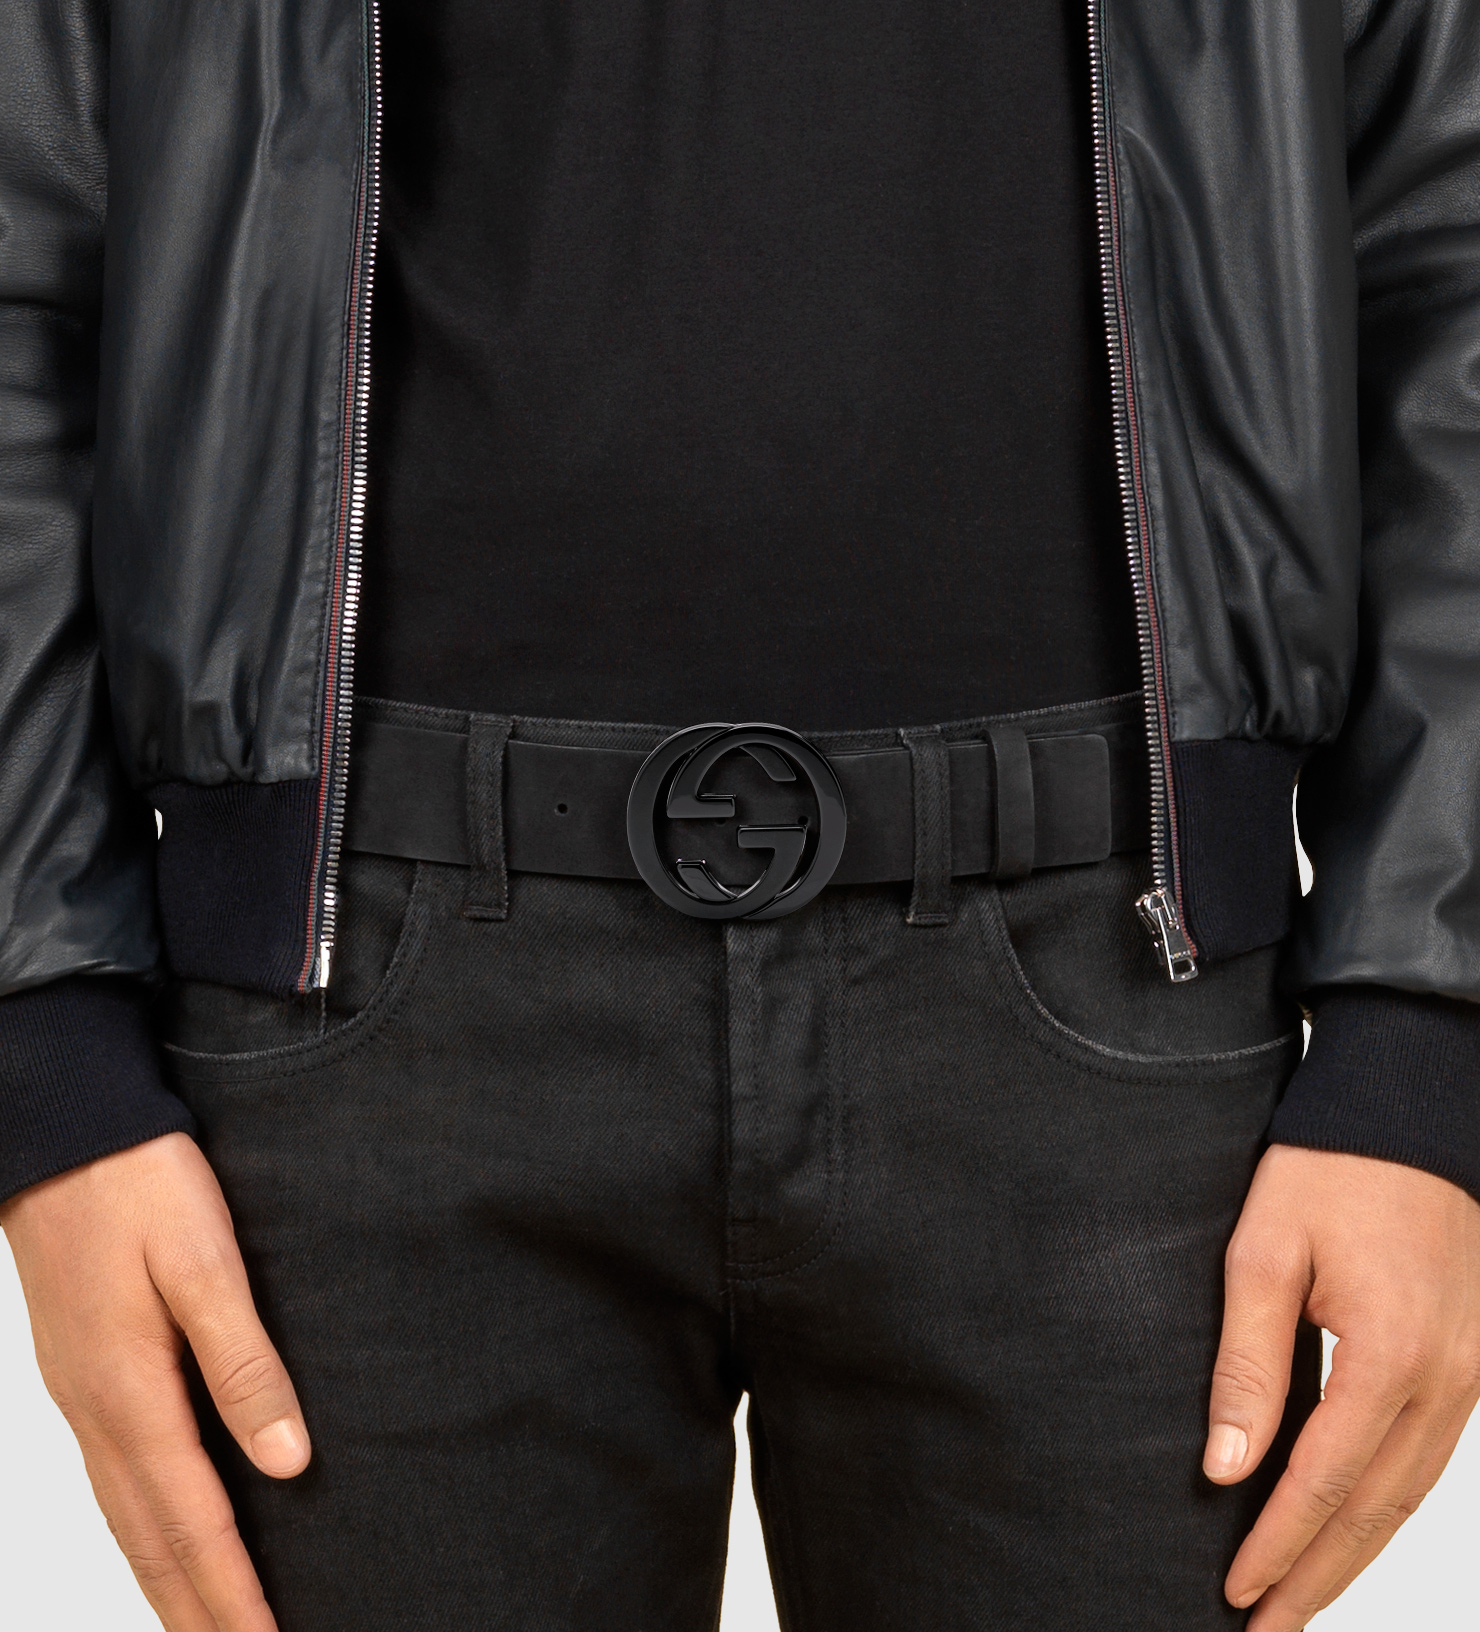 f77261f08 Gucci Black Suede Belt With Interlocking G Buckle in Black for Men ...